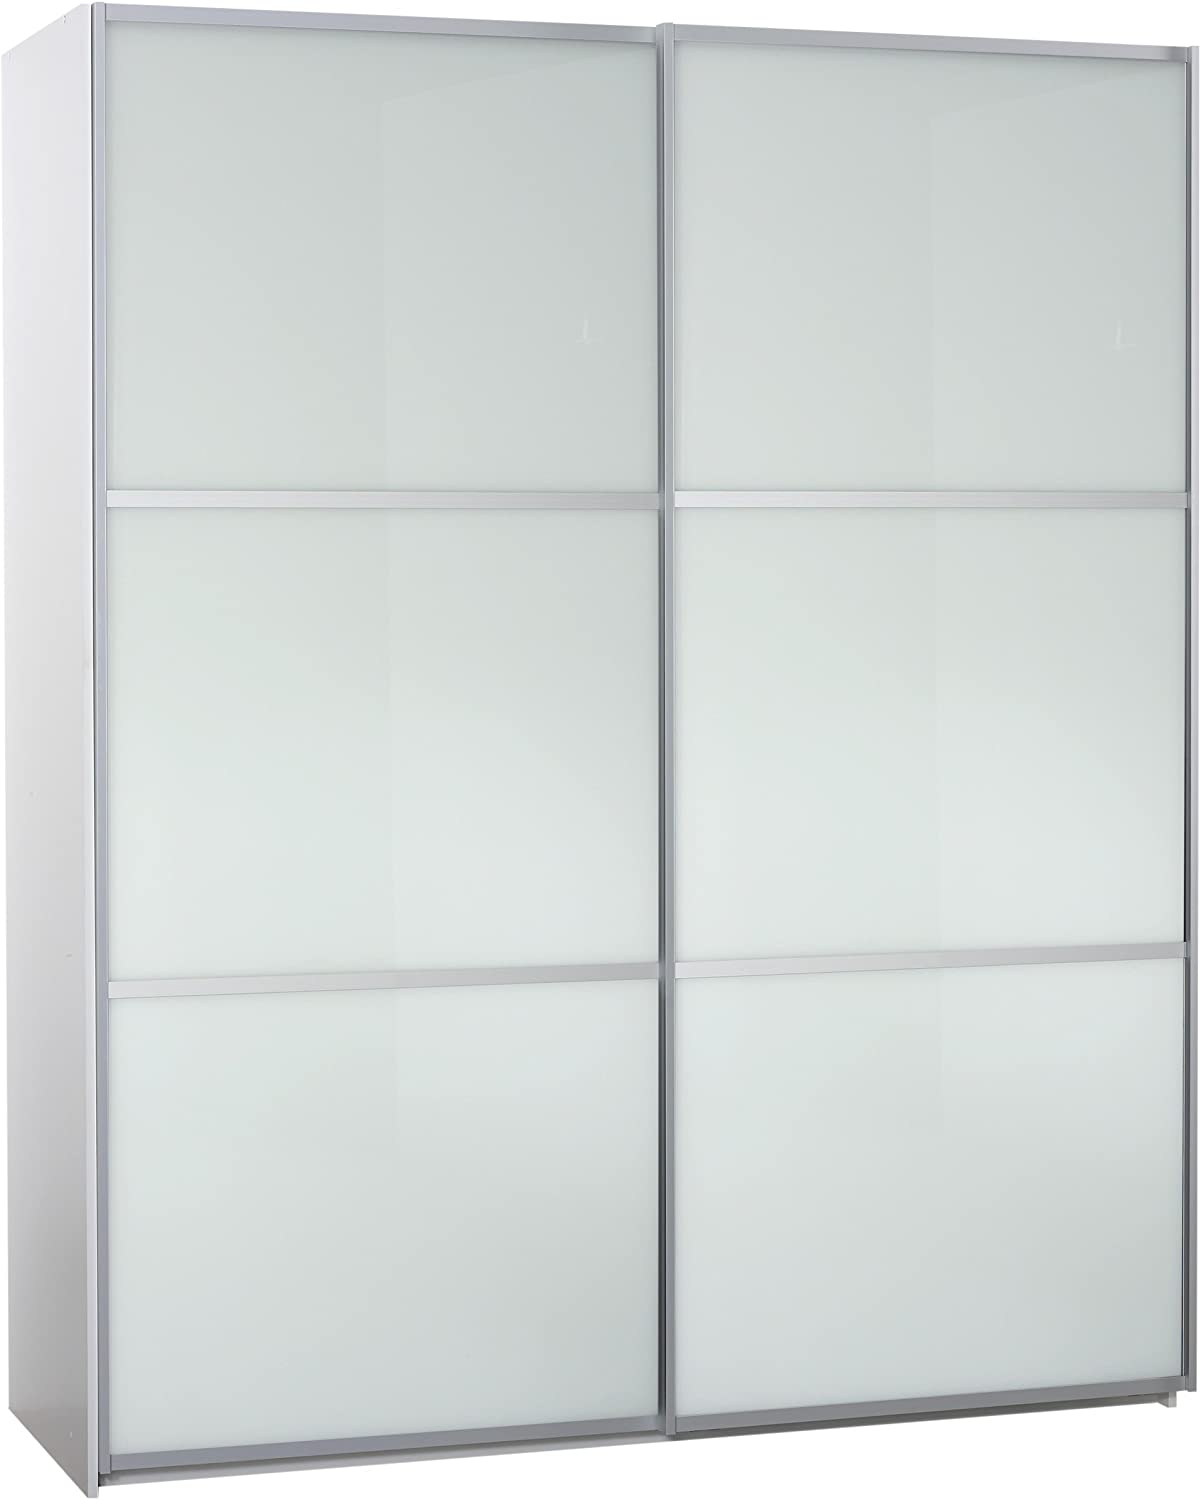 Furniture To go – Puerta Corredera de Cristal Robe, 220 x 180 x 64 cm, Color Blanco: Amazon.es: Hogar